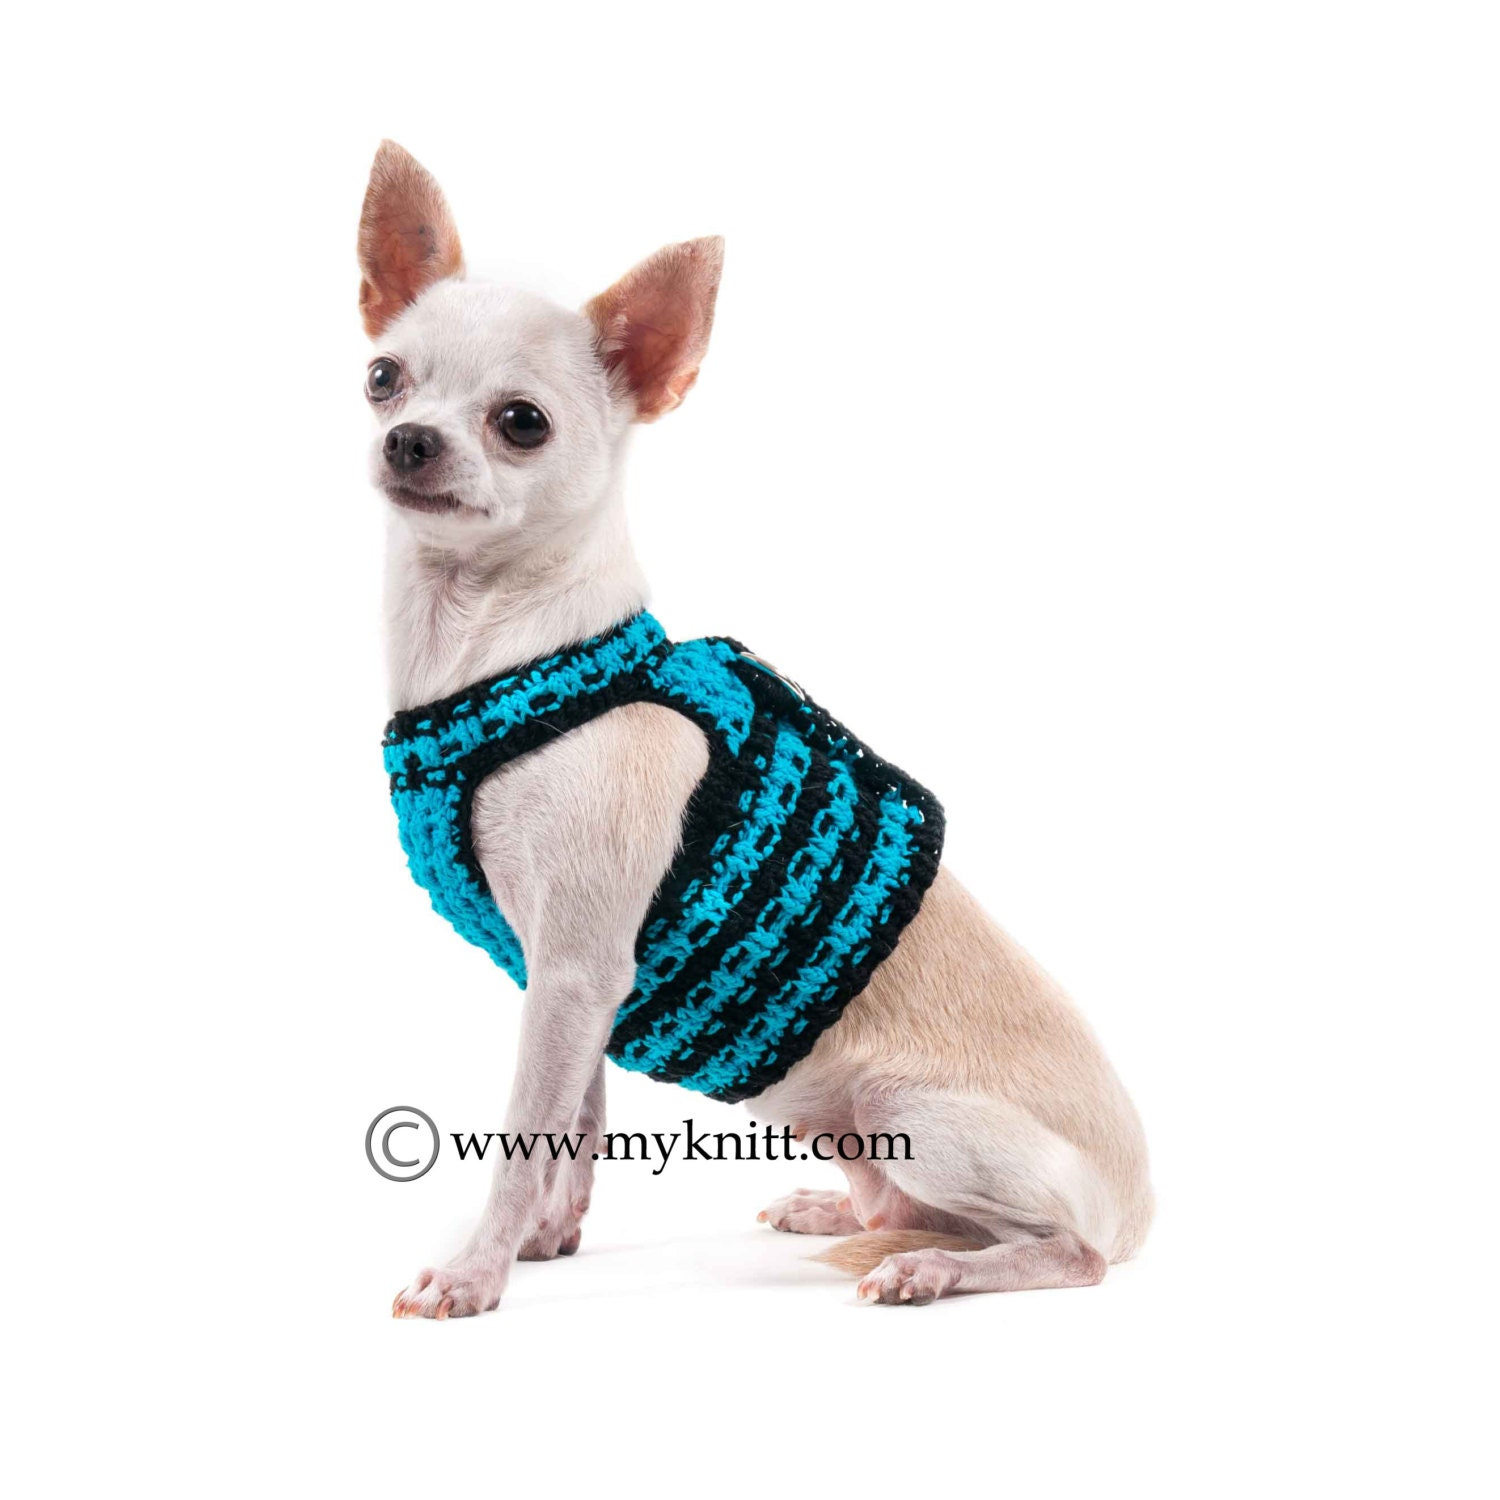 Free Crochet Pattern For Dog Harness : Turquoise Black Interlace Crochet Dog Harness Choke free